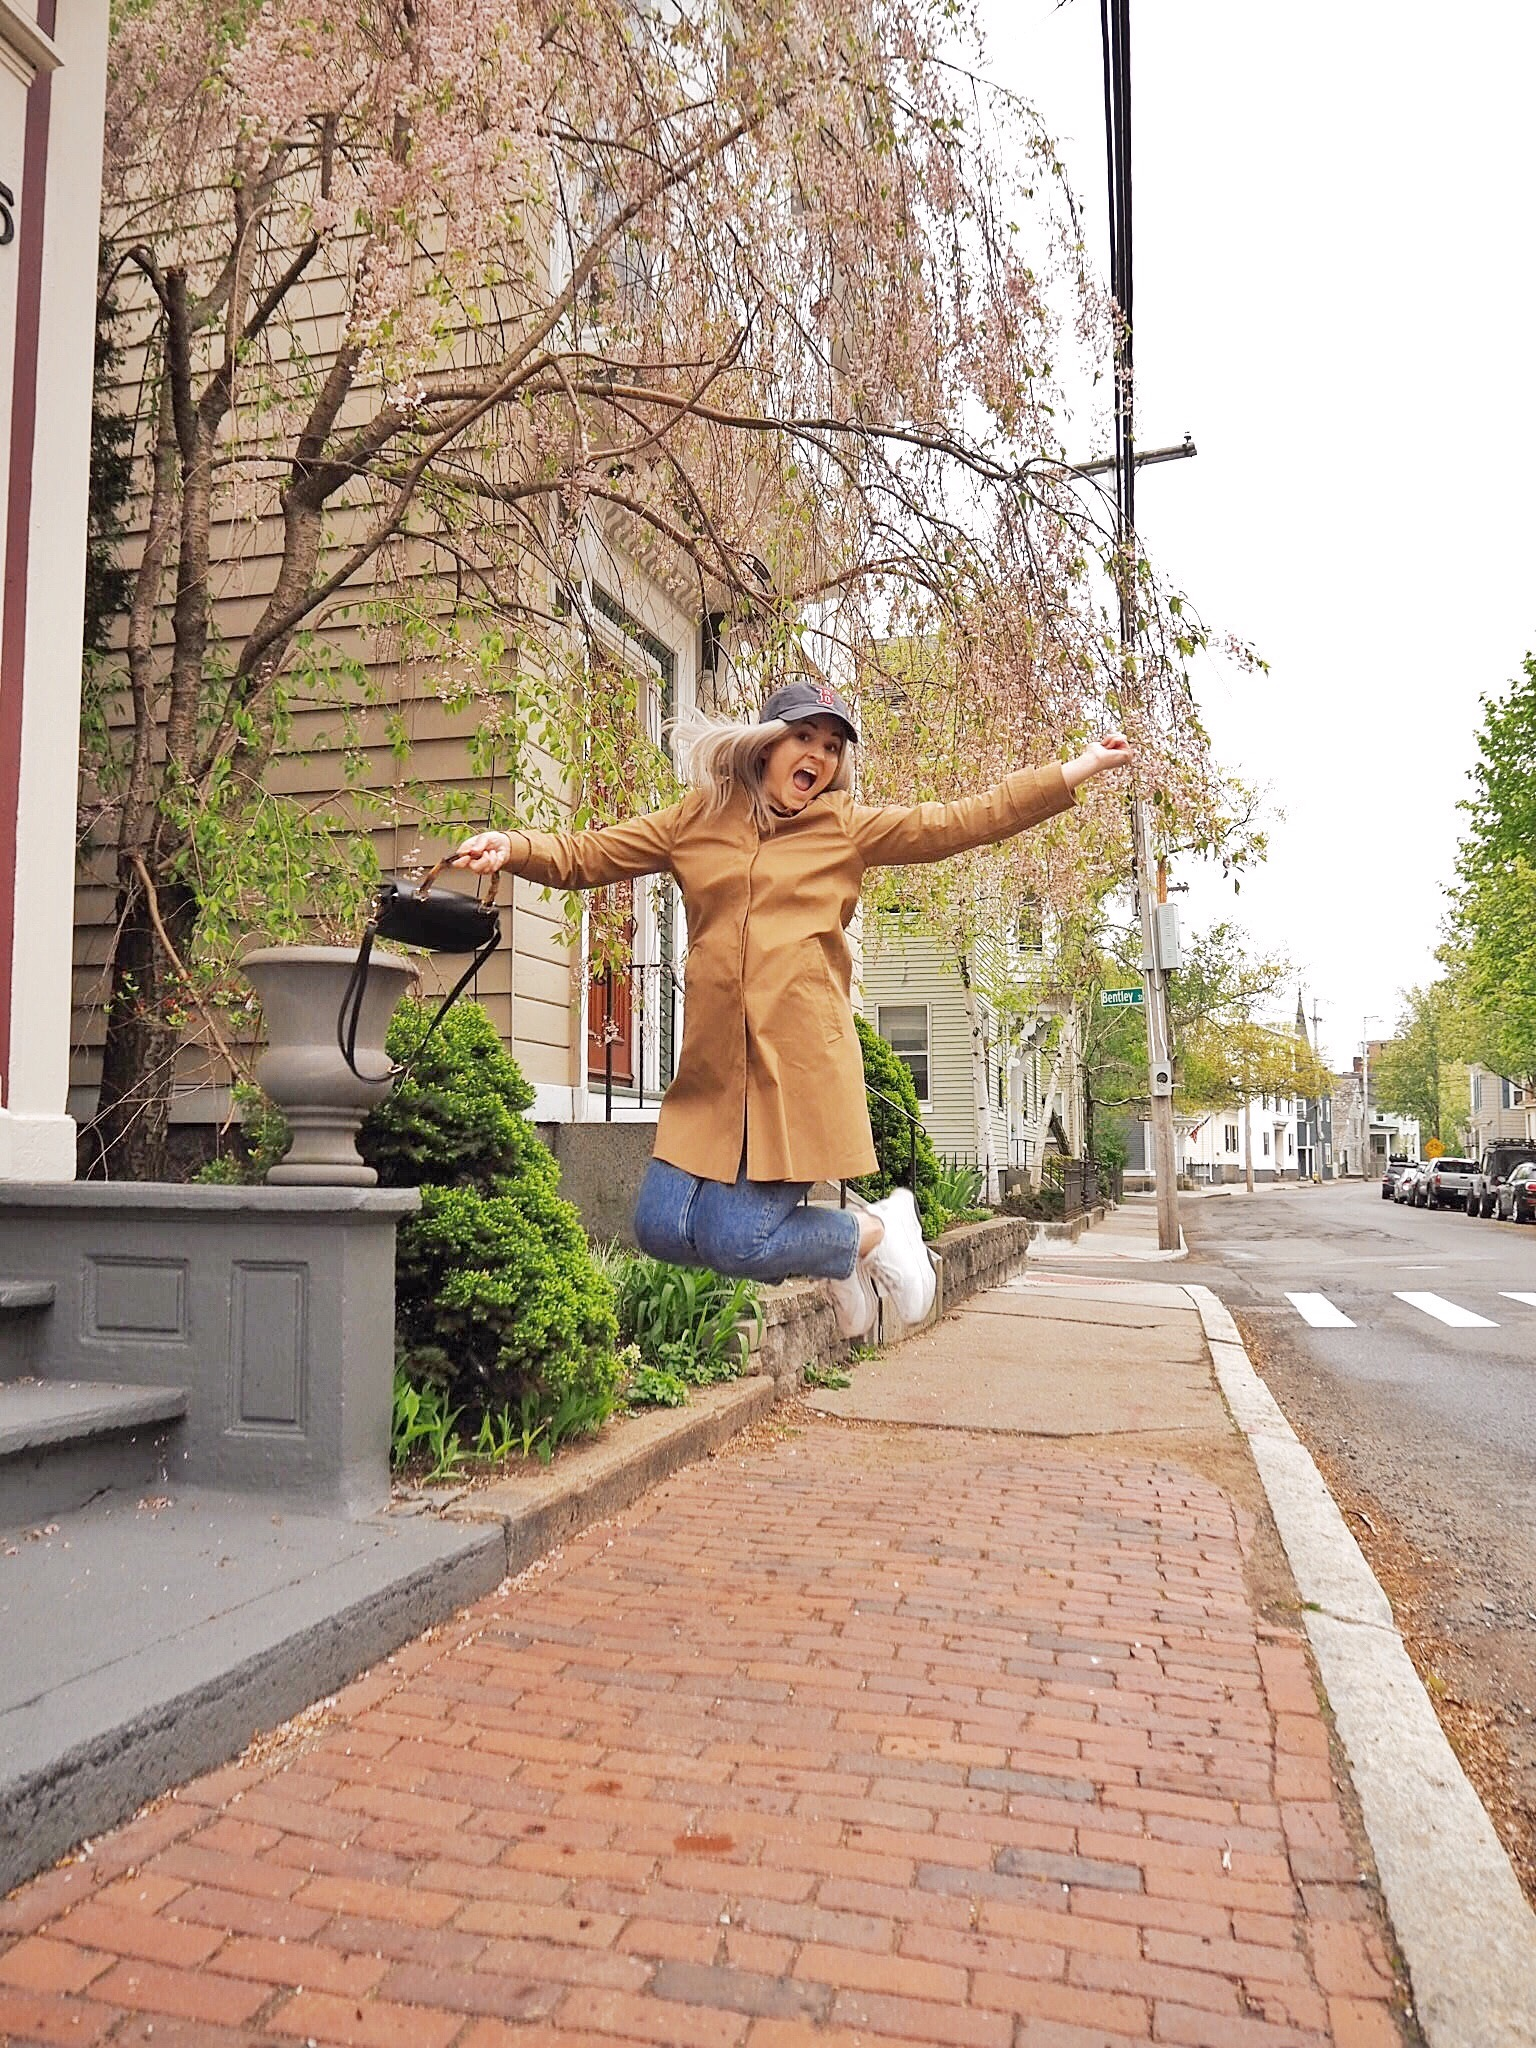 what to do in Salem Massachusetts for a day